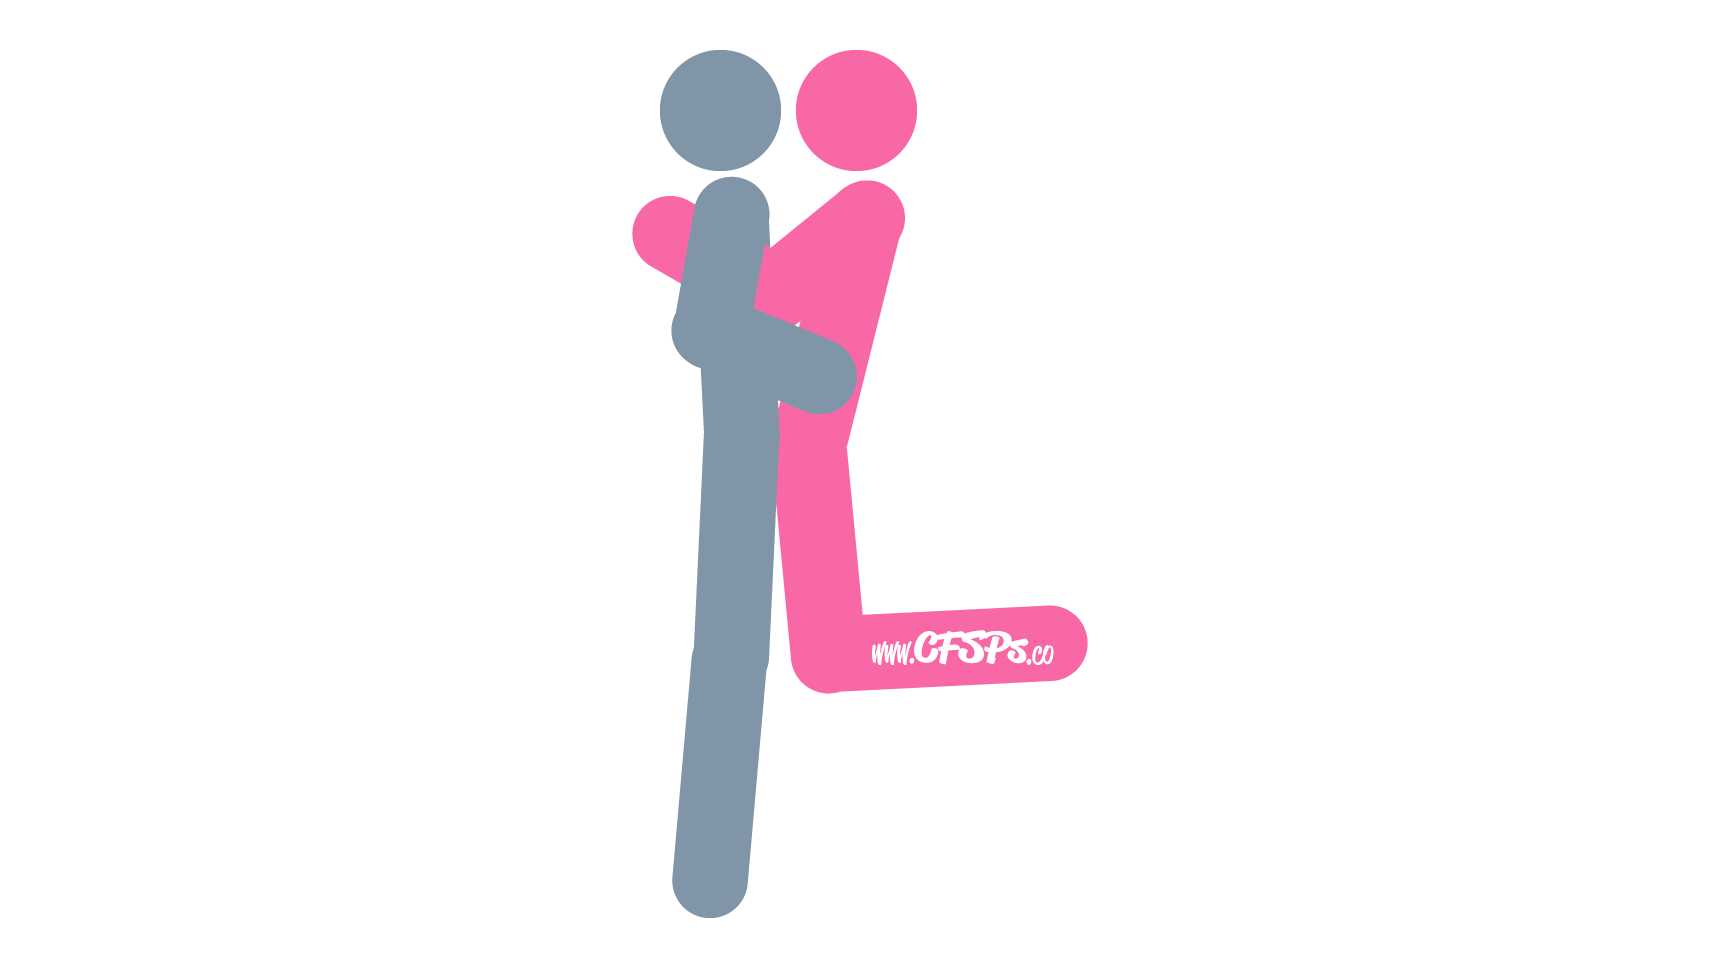 An illustration of the Dublin Shuffle sex position. This picture demonstrates how Dublin Shuffle is an intimate, kneeling sex position enjoyed using the edge of a bed or couch.